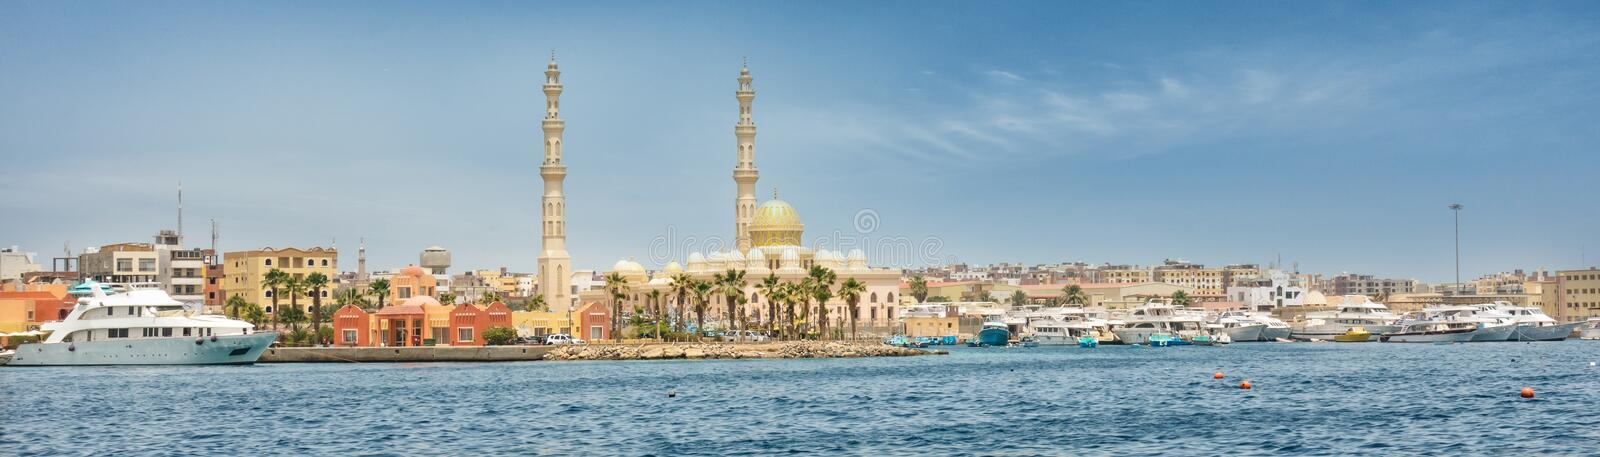 Harbor of Hurghada in Egypt royalty free stock image